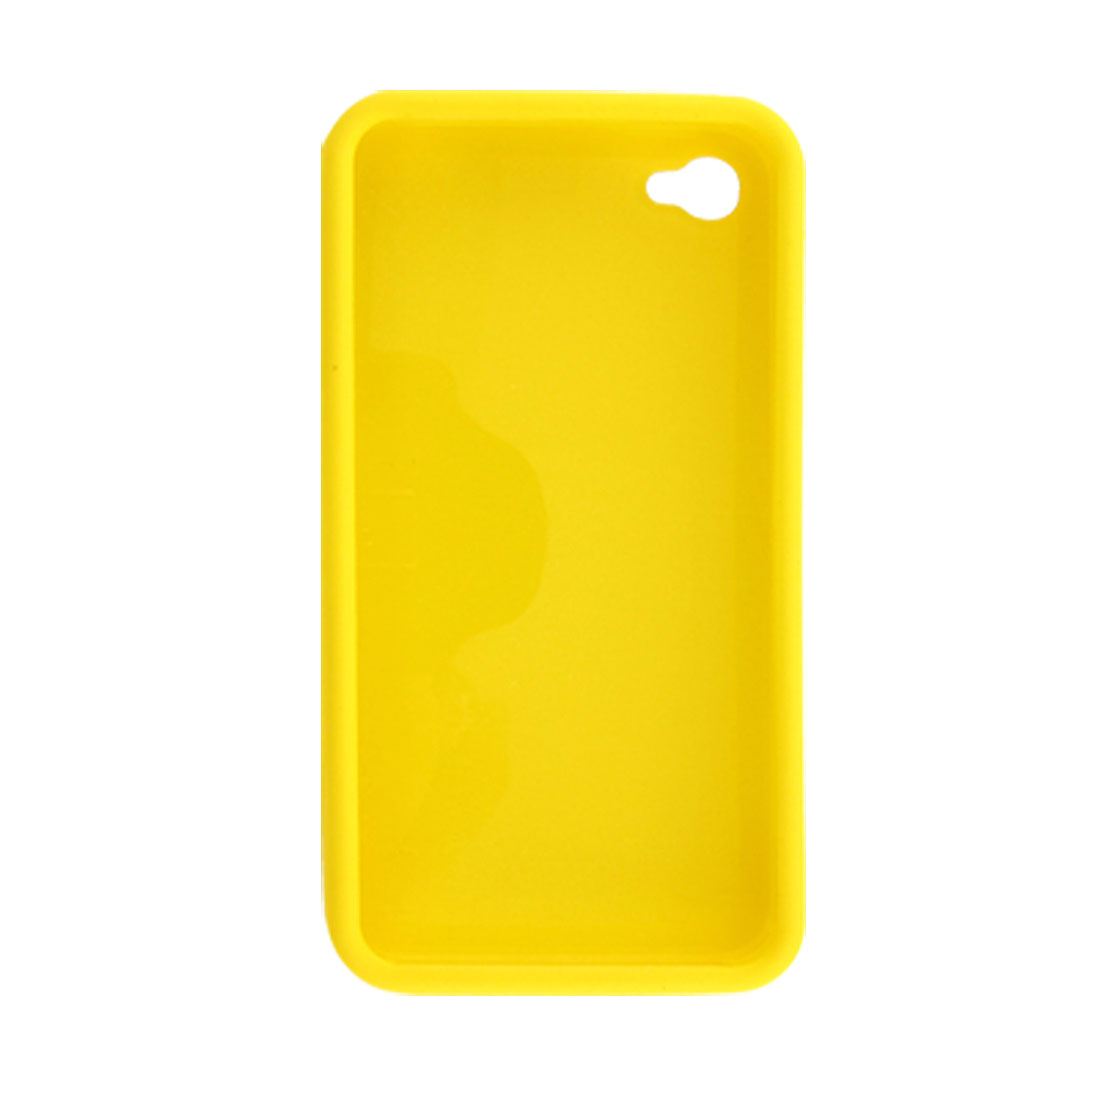 Yellow Hard Plastic Back Case Shield for iPhone 4 4G